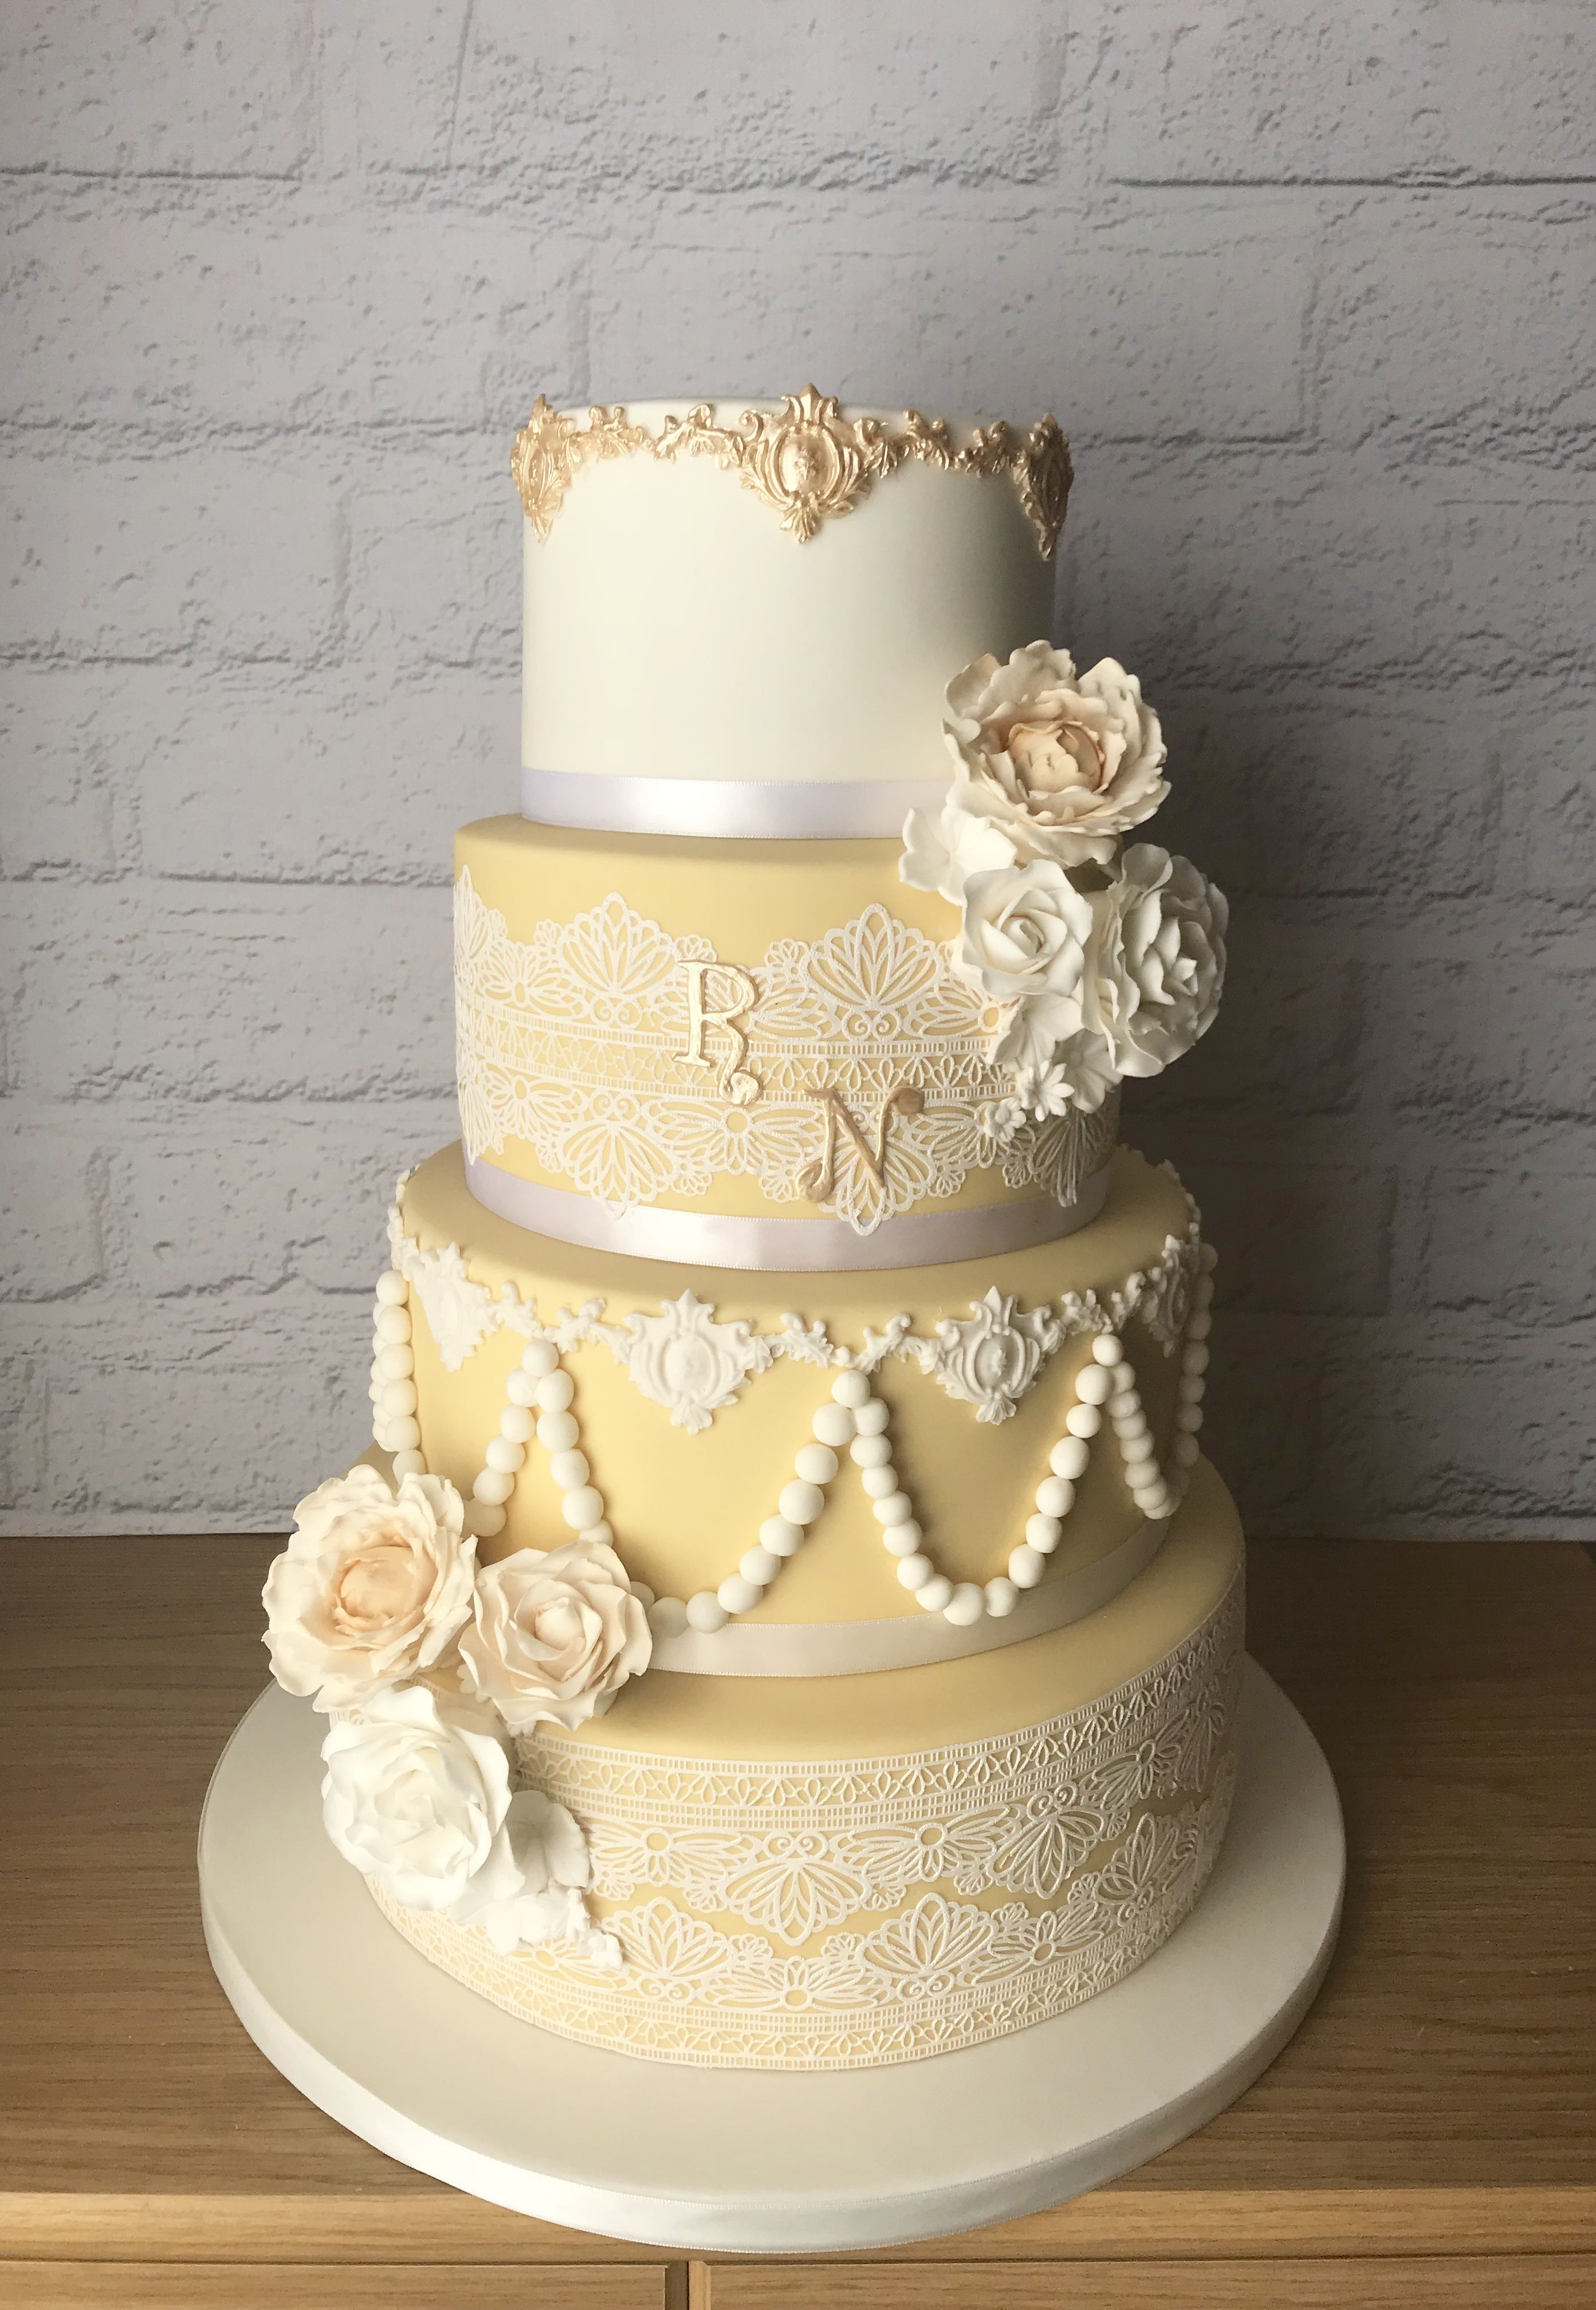 Pale gold and white wedding cake with edible cake lace | Taylormade ...